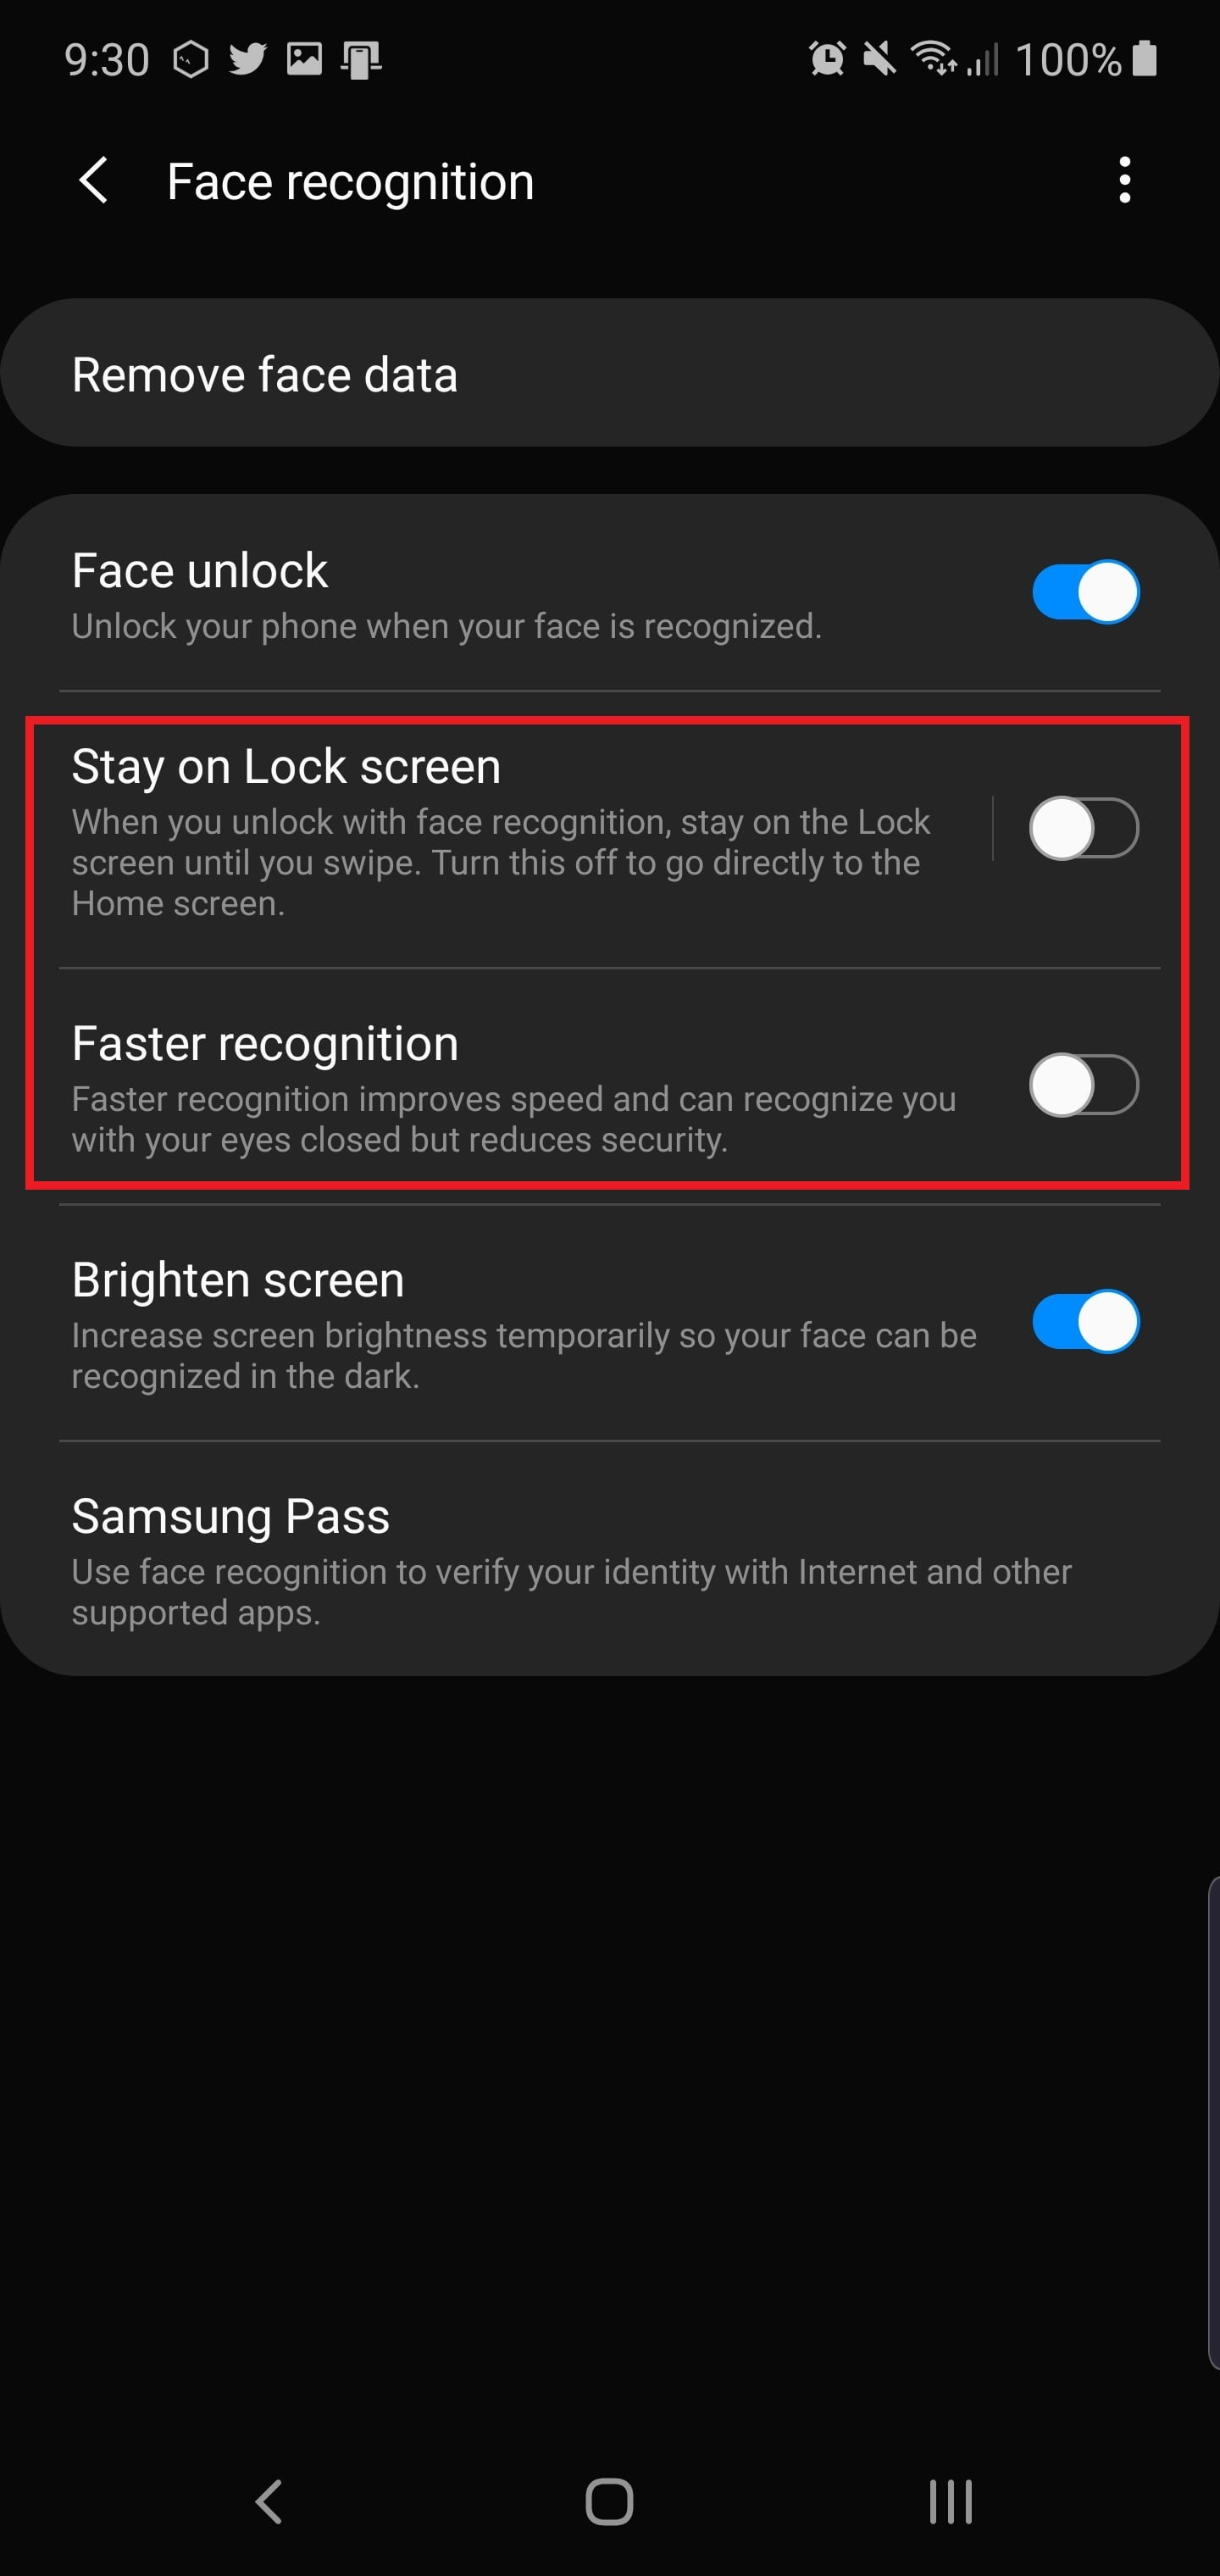 Samsung Galaxy Note 10 or Note 10 Plus: 11 Key Settings To